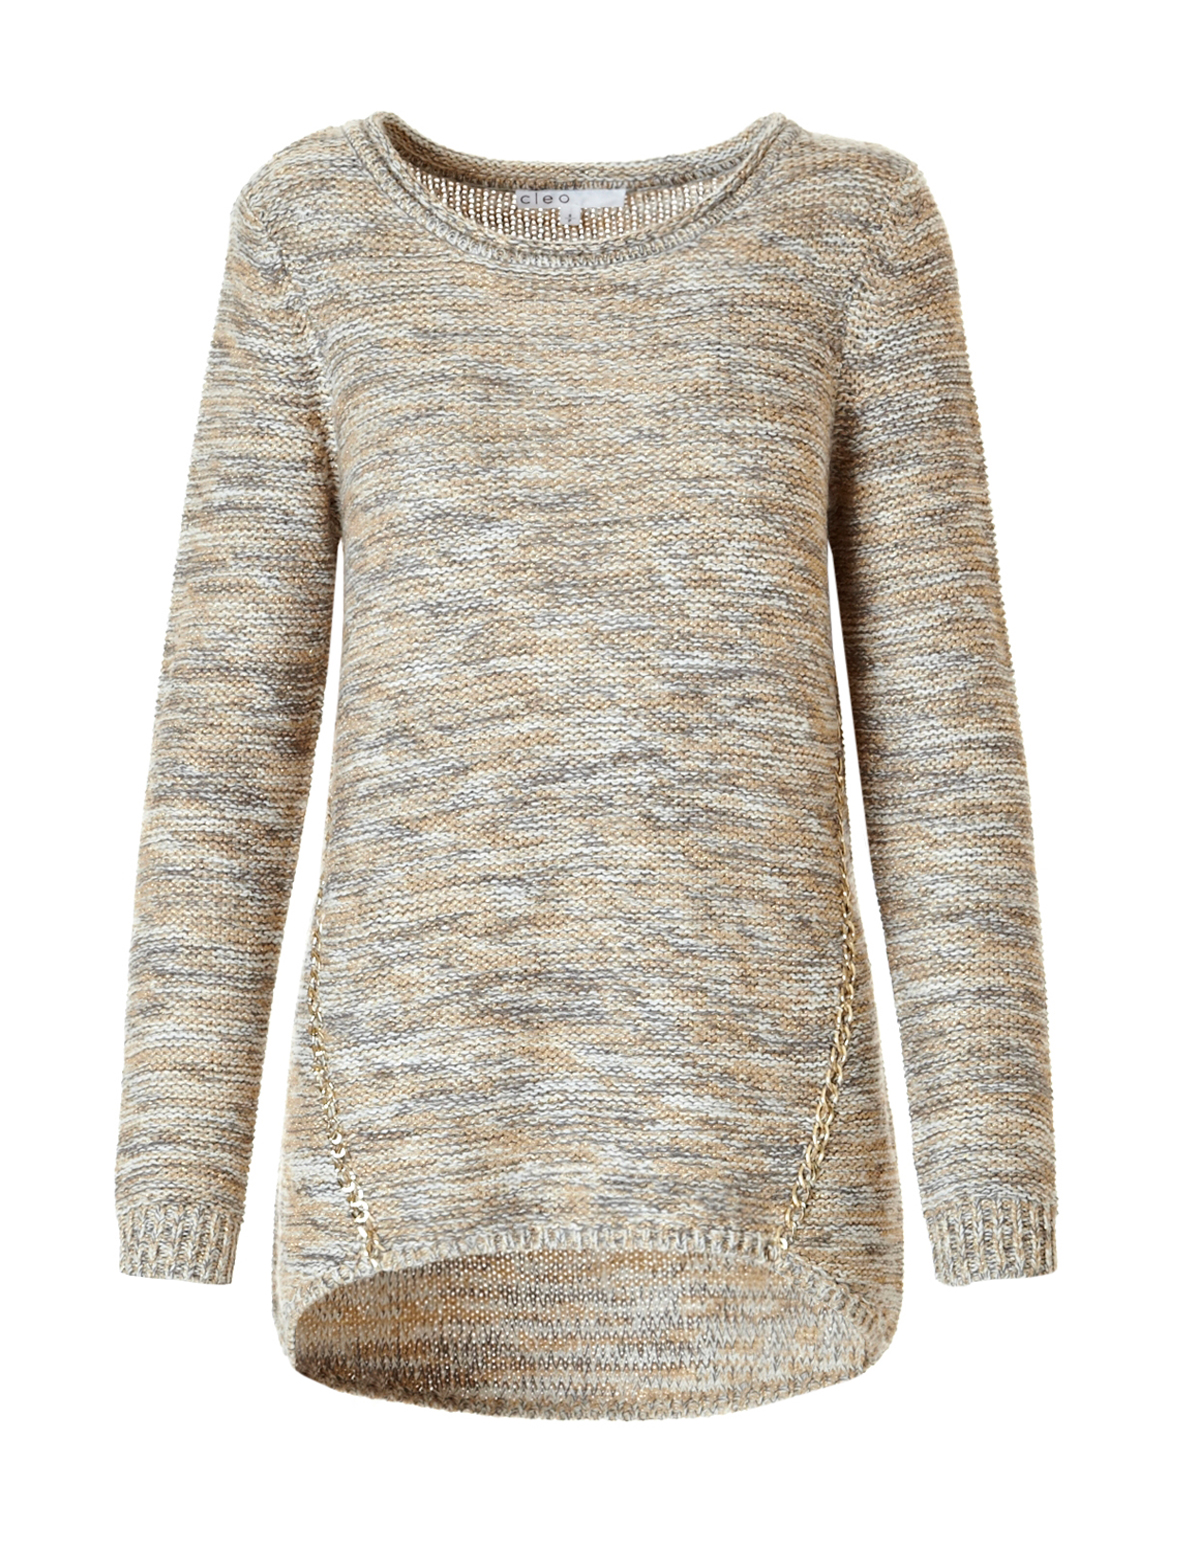 Gold Chain Knit Sweater | Cleo